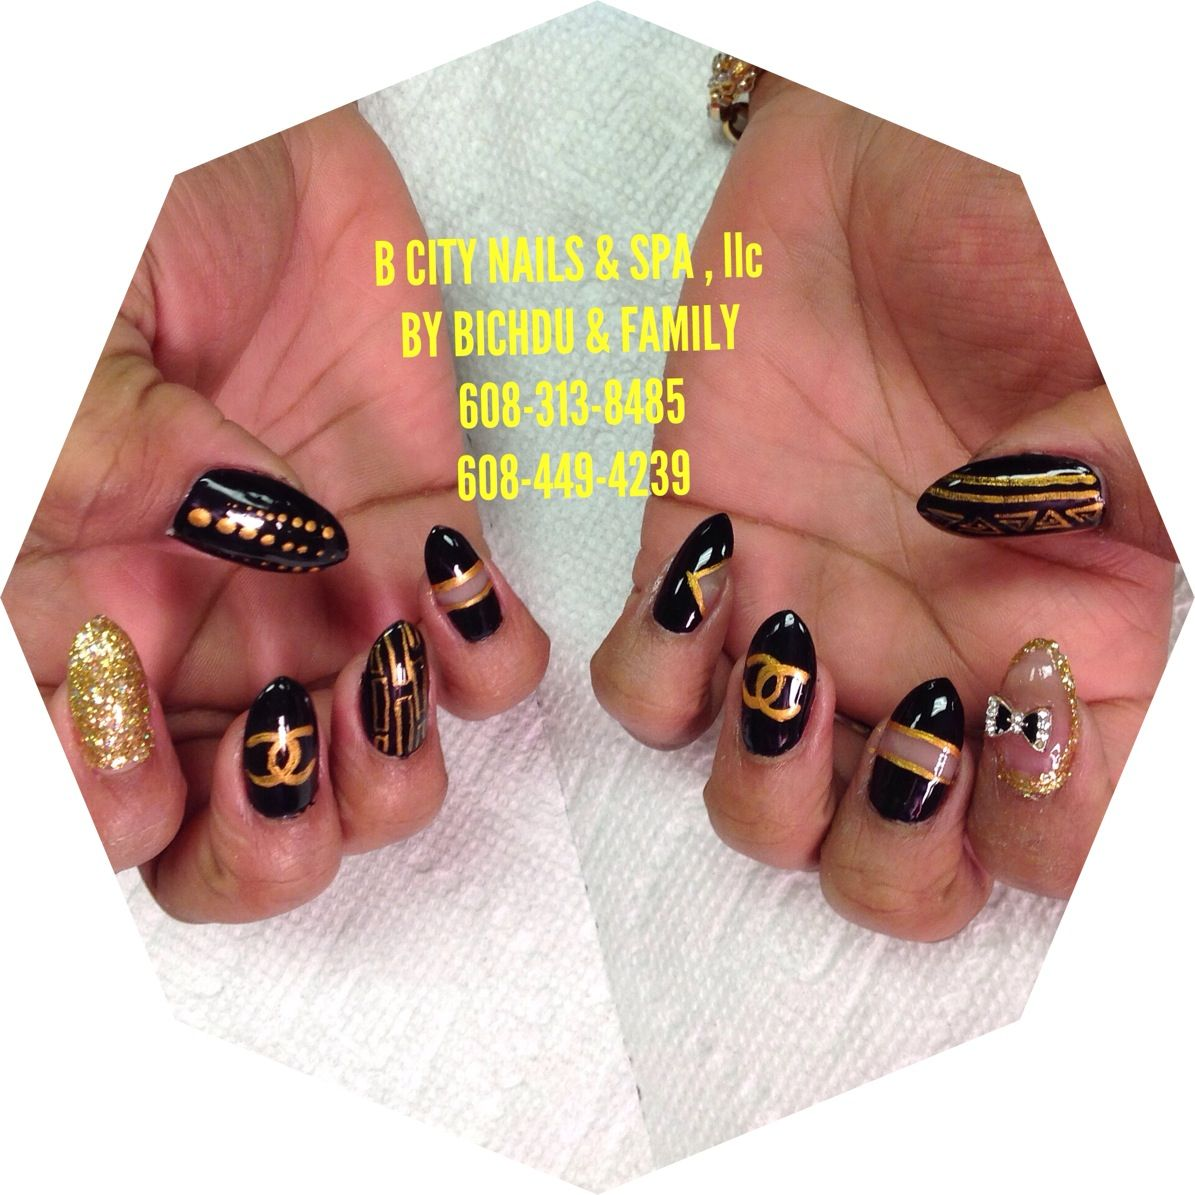 #B CITY NAILS & SPA,llc 2632 PRAIRIE AVE , BELOIT , WI 53511 MON - SAT : 9:30 am - 7:30 pm SUNDAY : 11:00 am - 5:00 pm 608-313-8485 or608-449-4239 STOP IN LET US DO YOUR NAILS